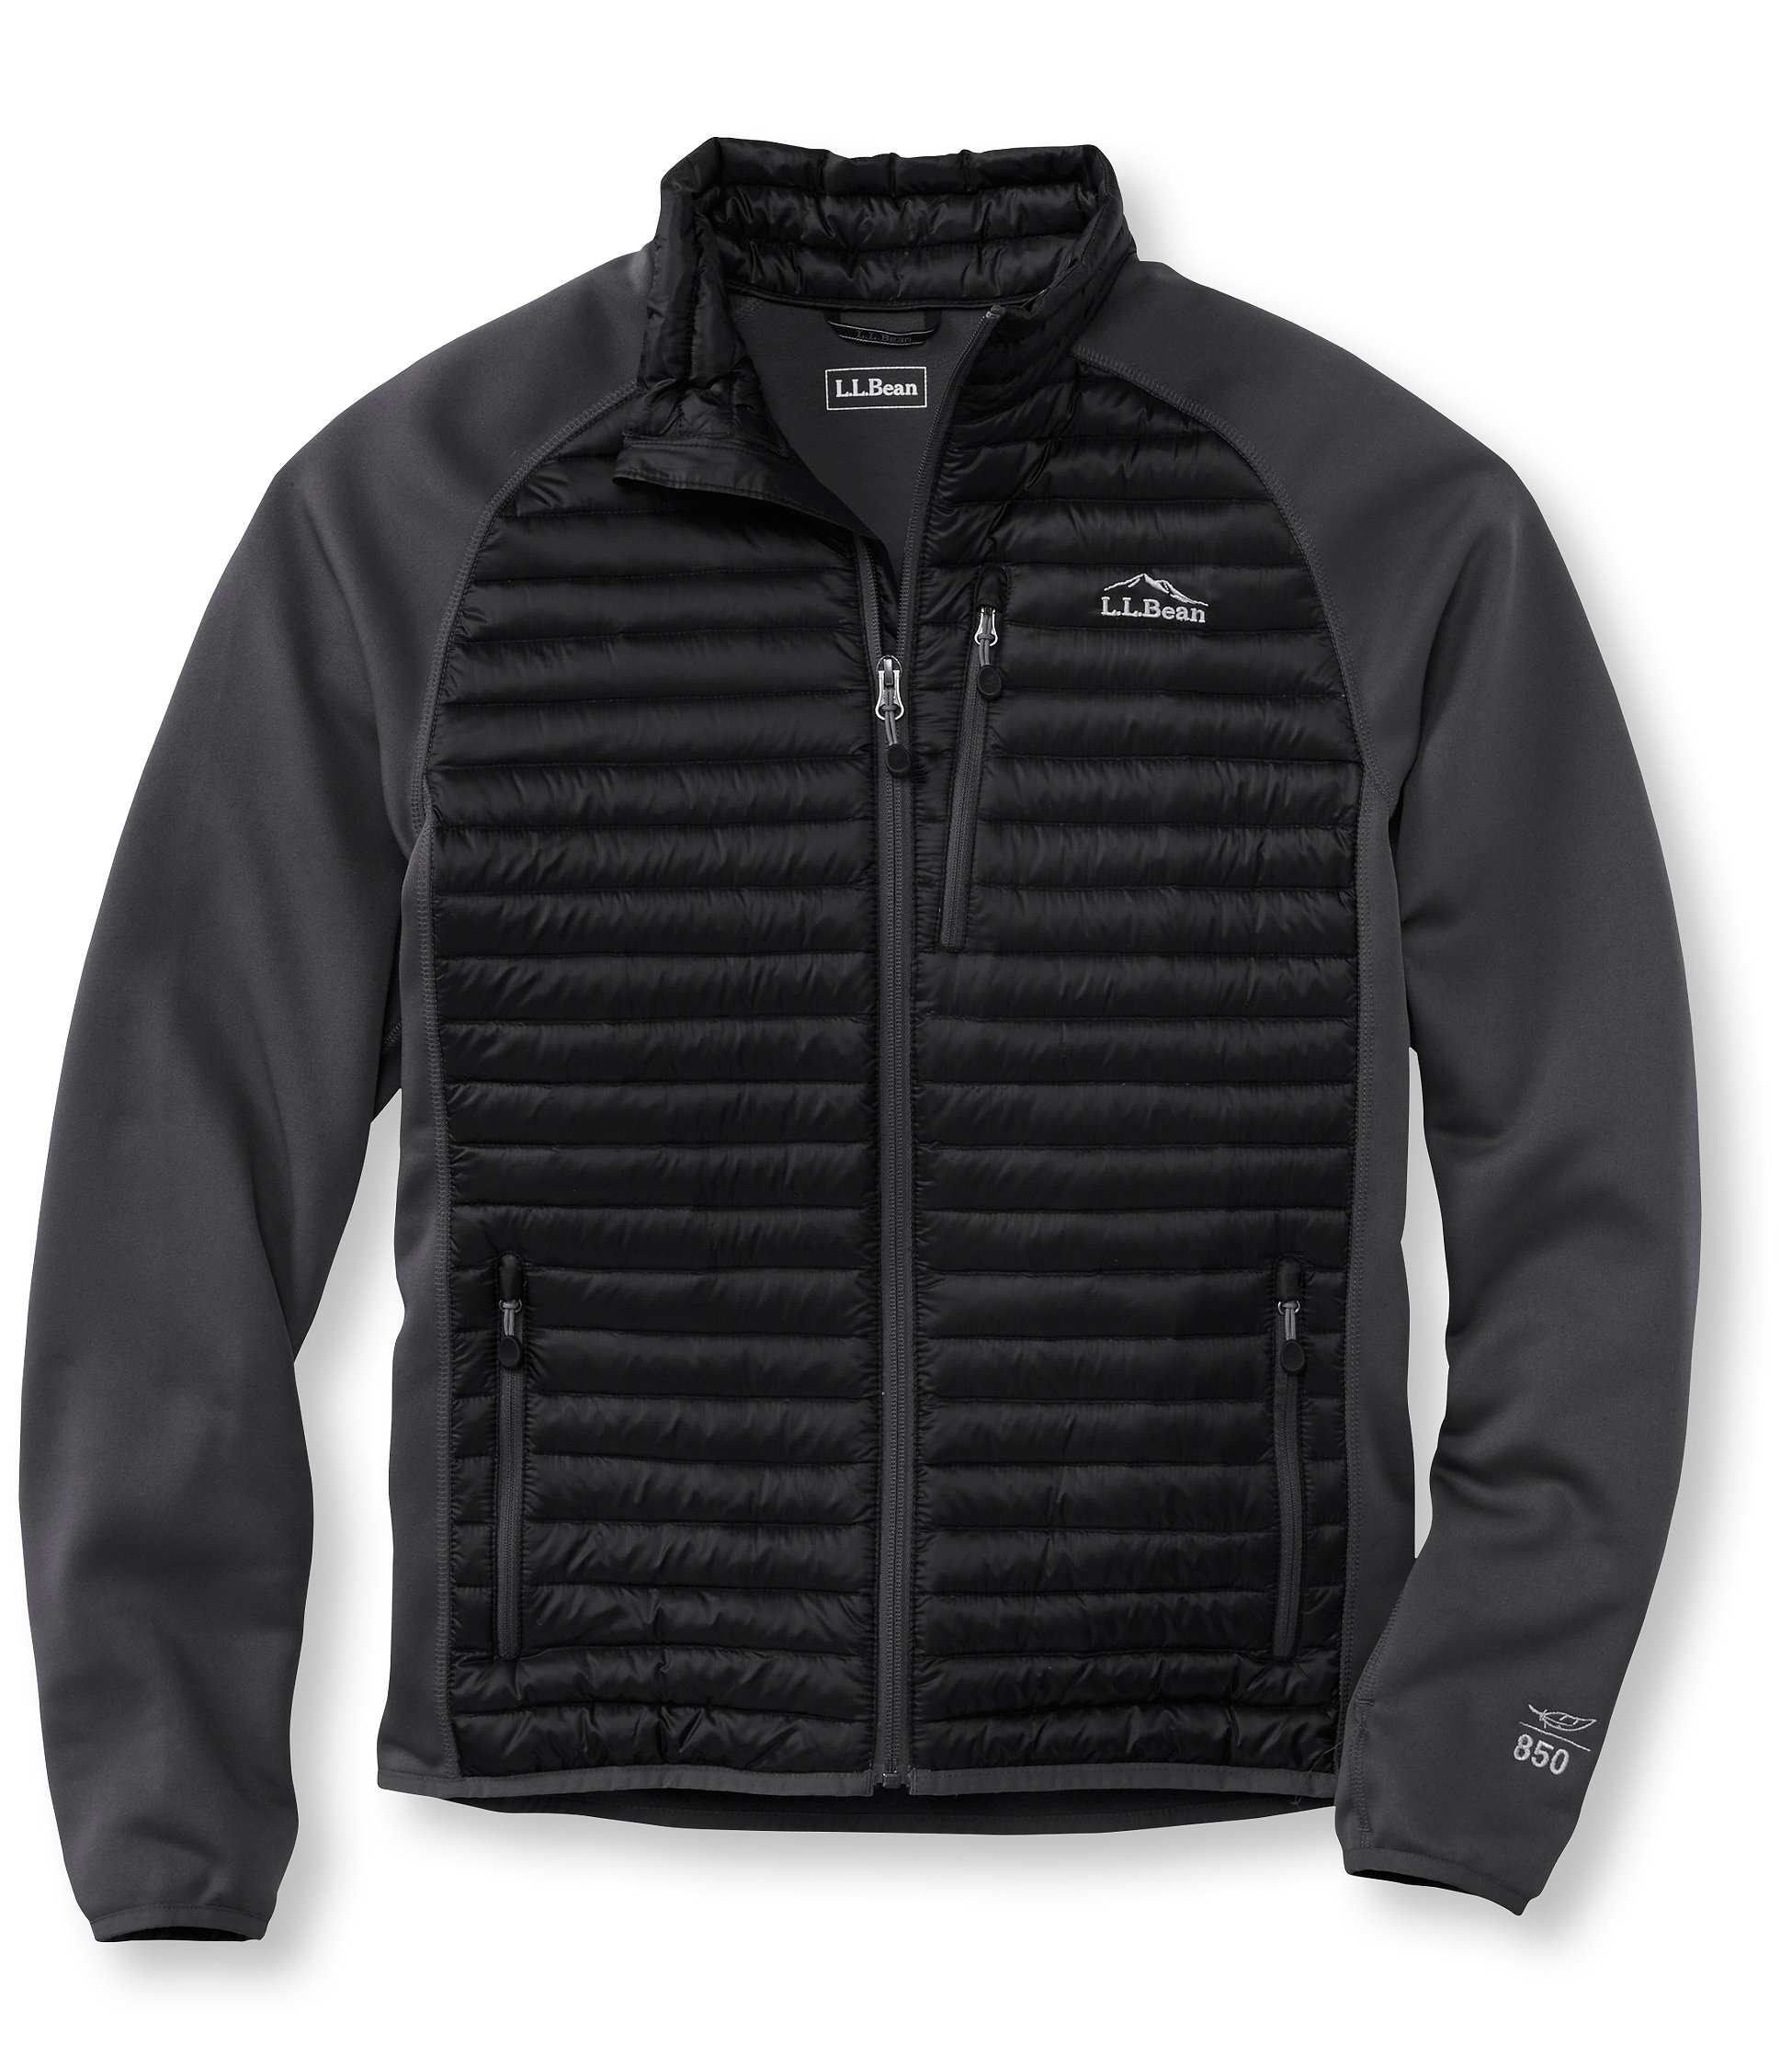 photo: L.L.Bean Ultralight 850 Down Fuse Jacket down insulated jacket